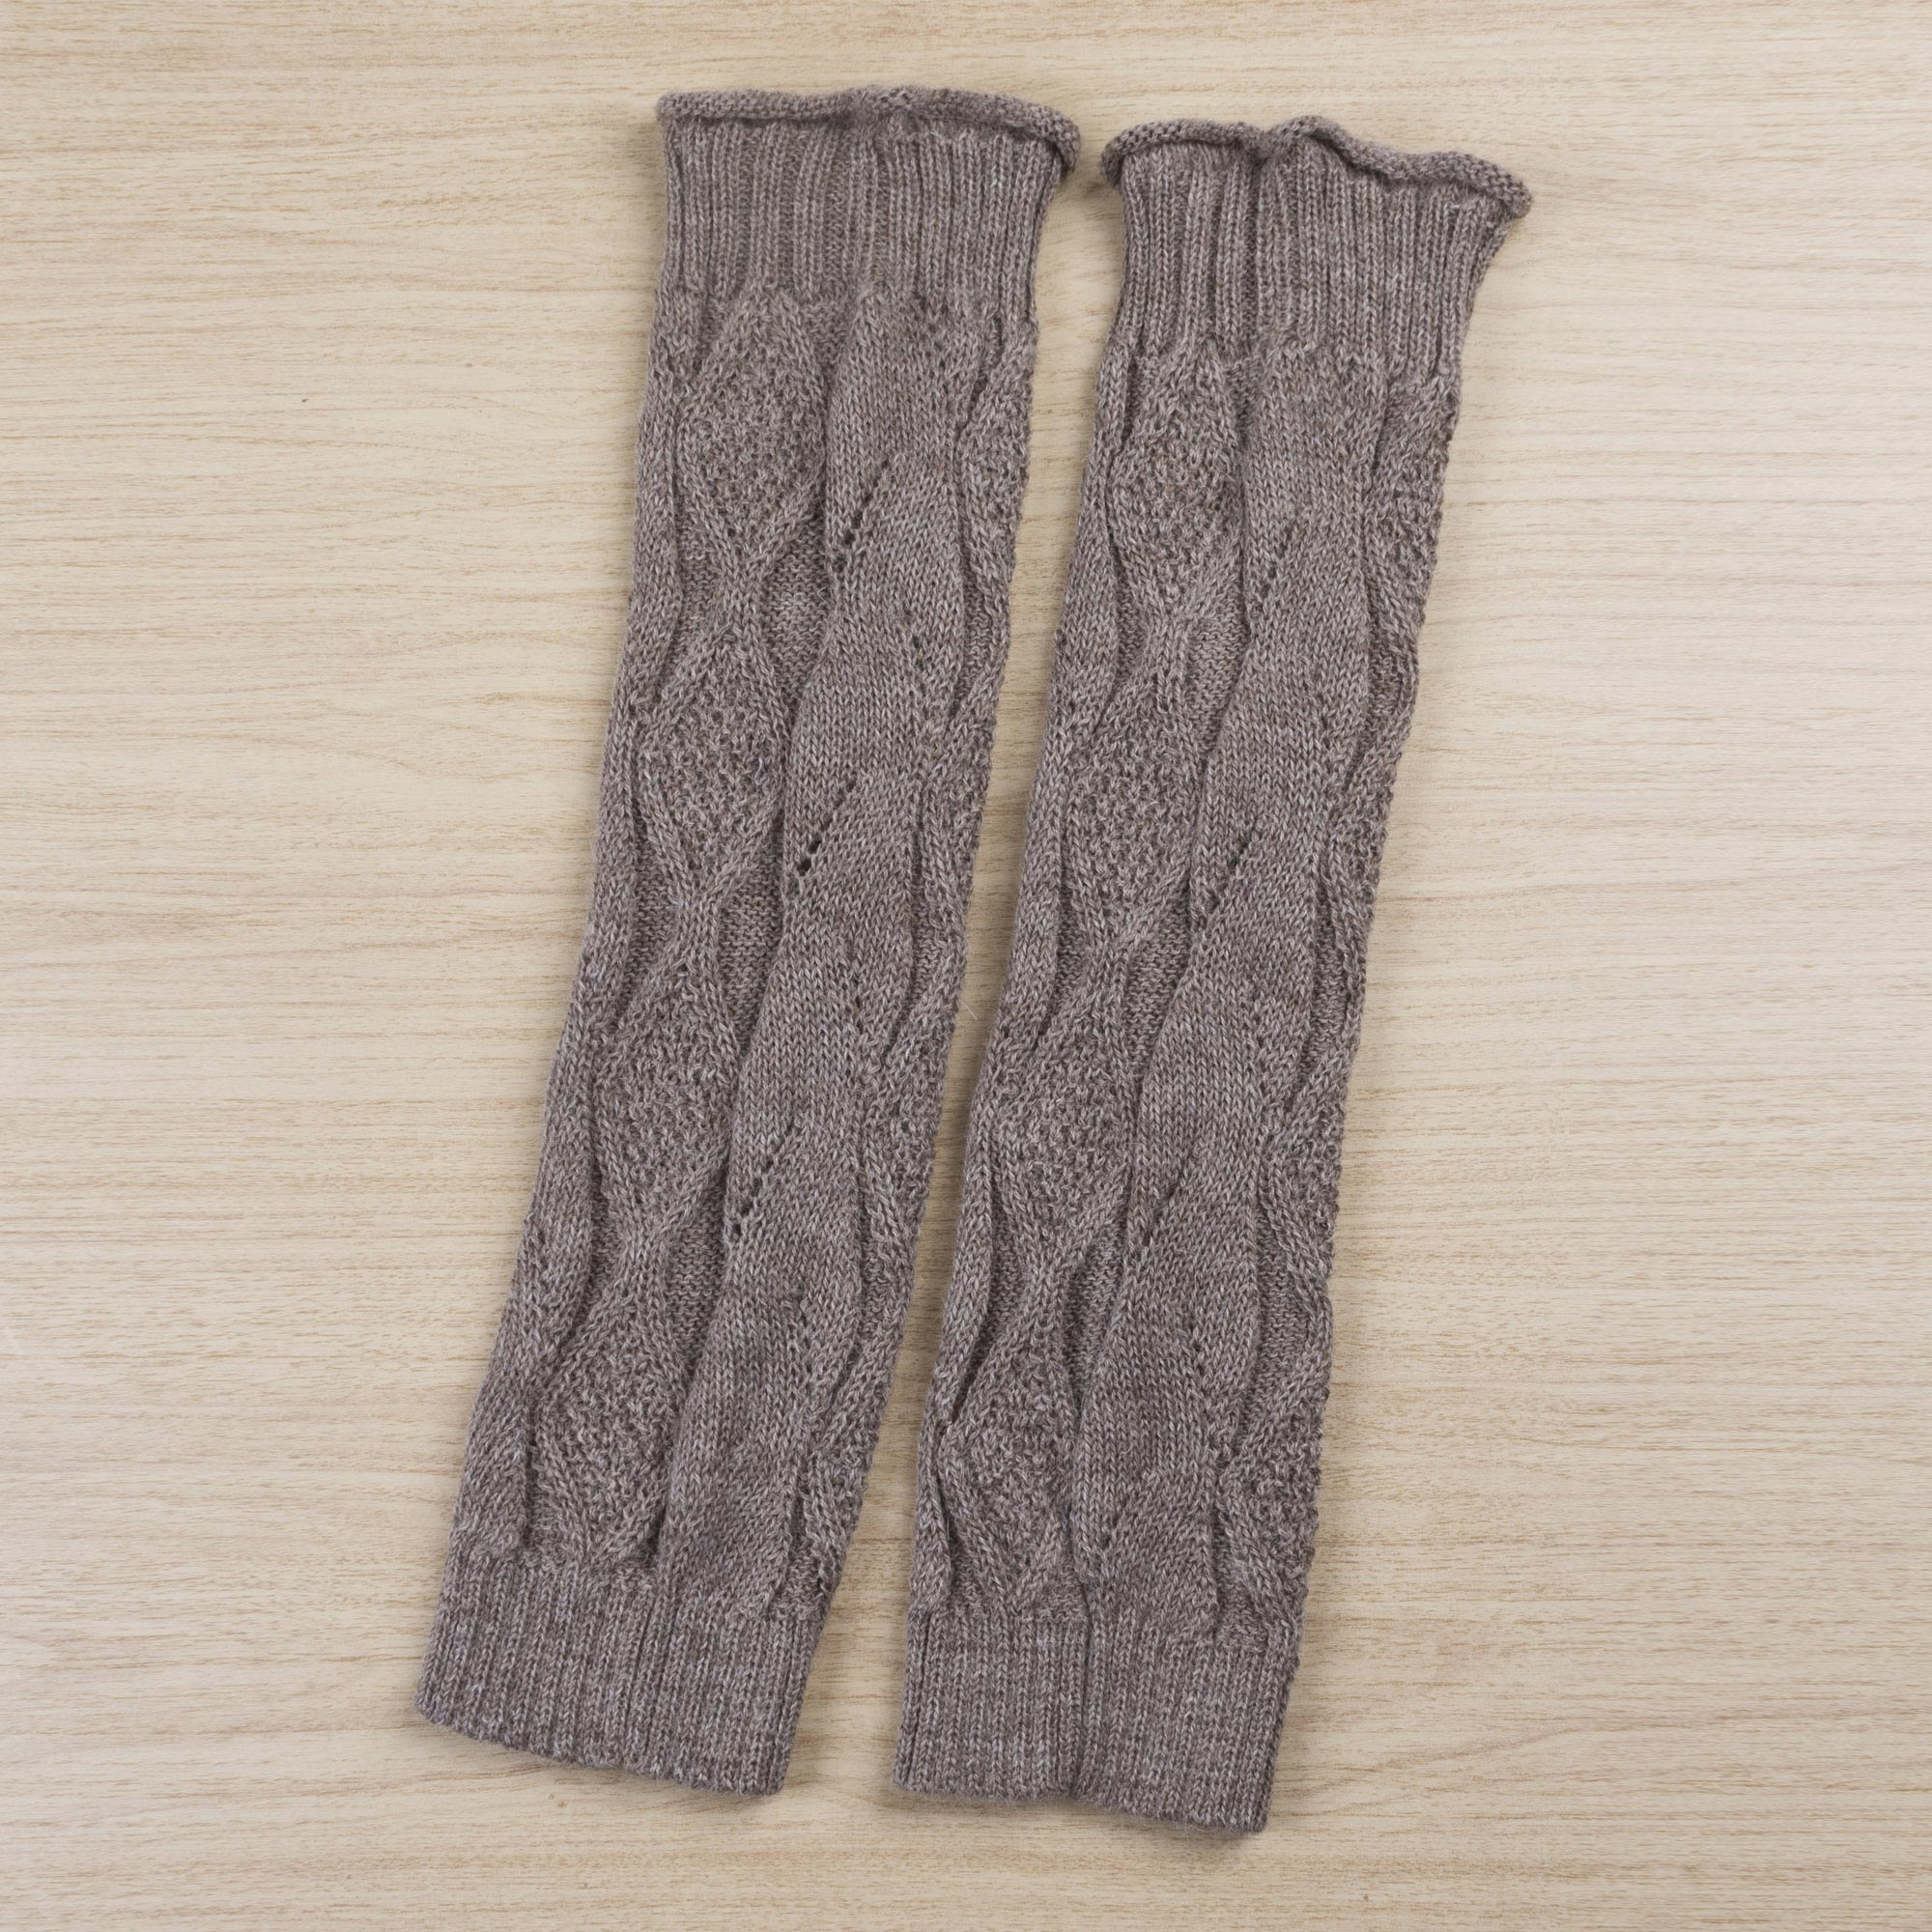 100% Alpaca Tan Patterned Knitted Leg Warmers from Peru Look Cool and Stay Warm Stylish & Practical Winter Accessories